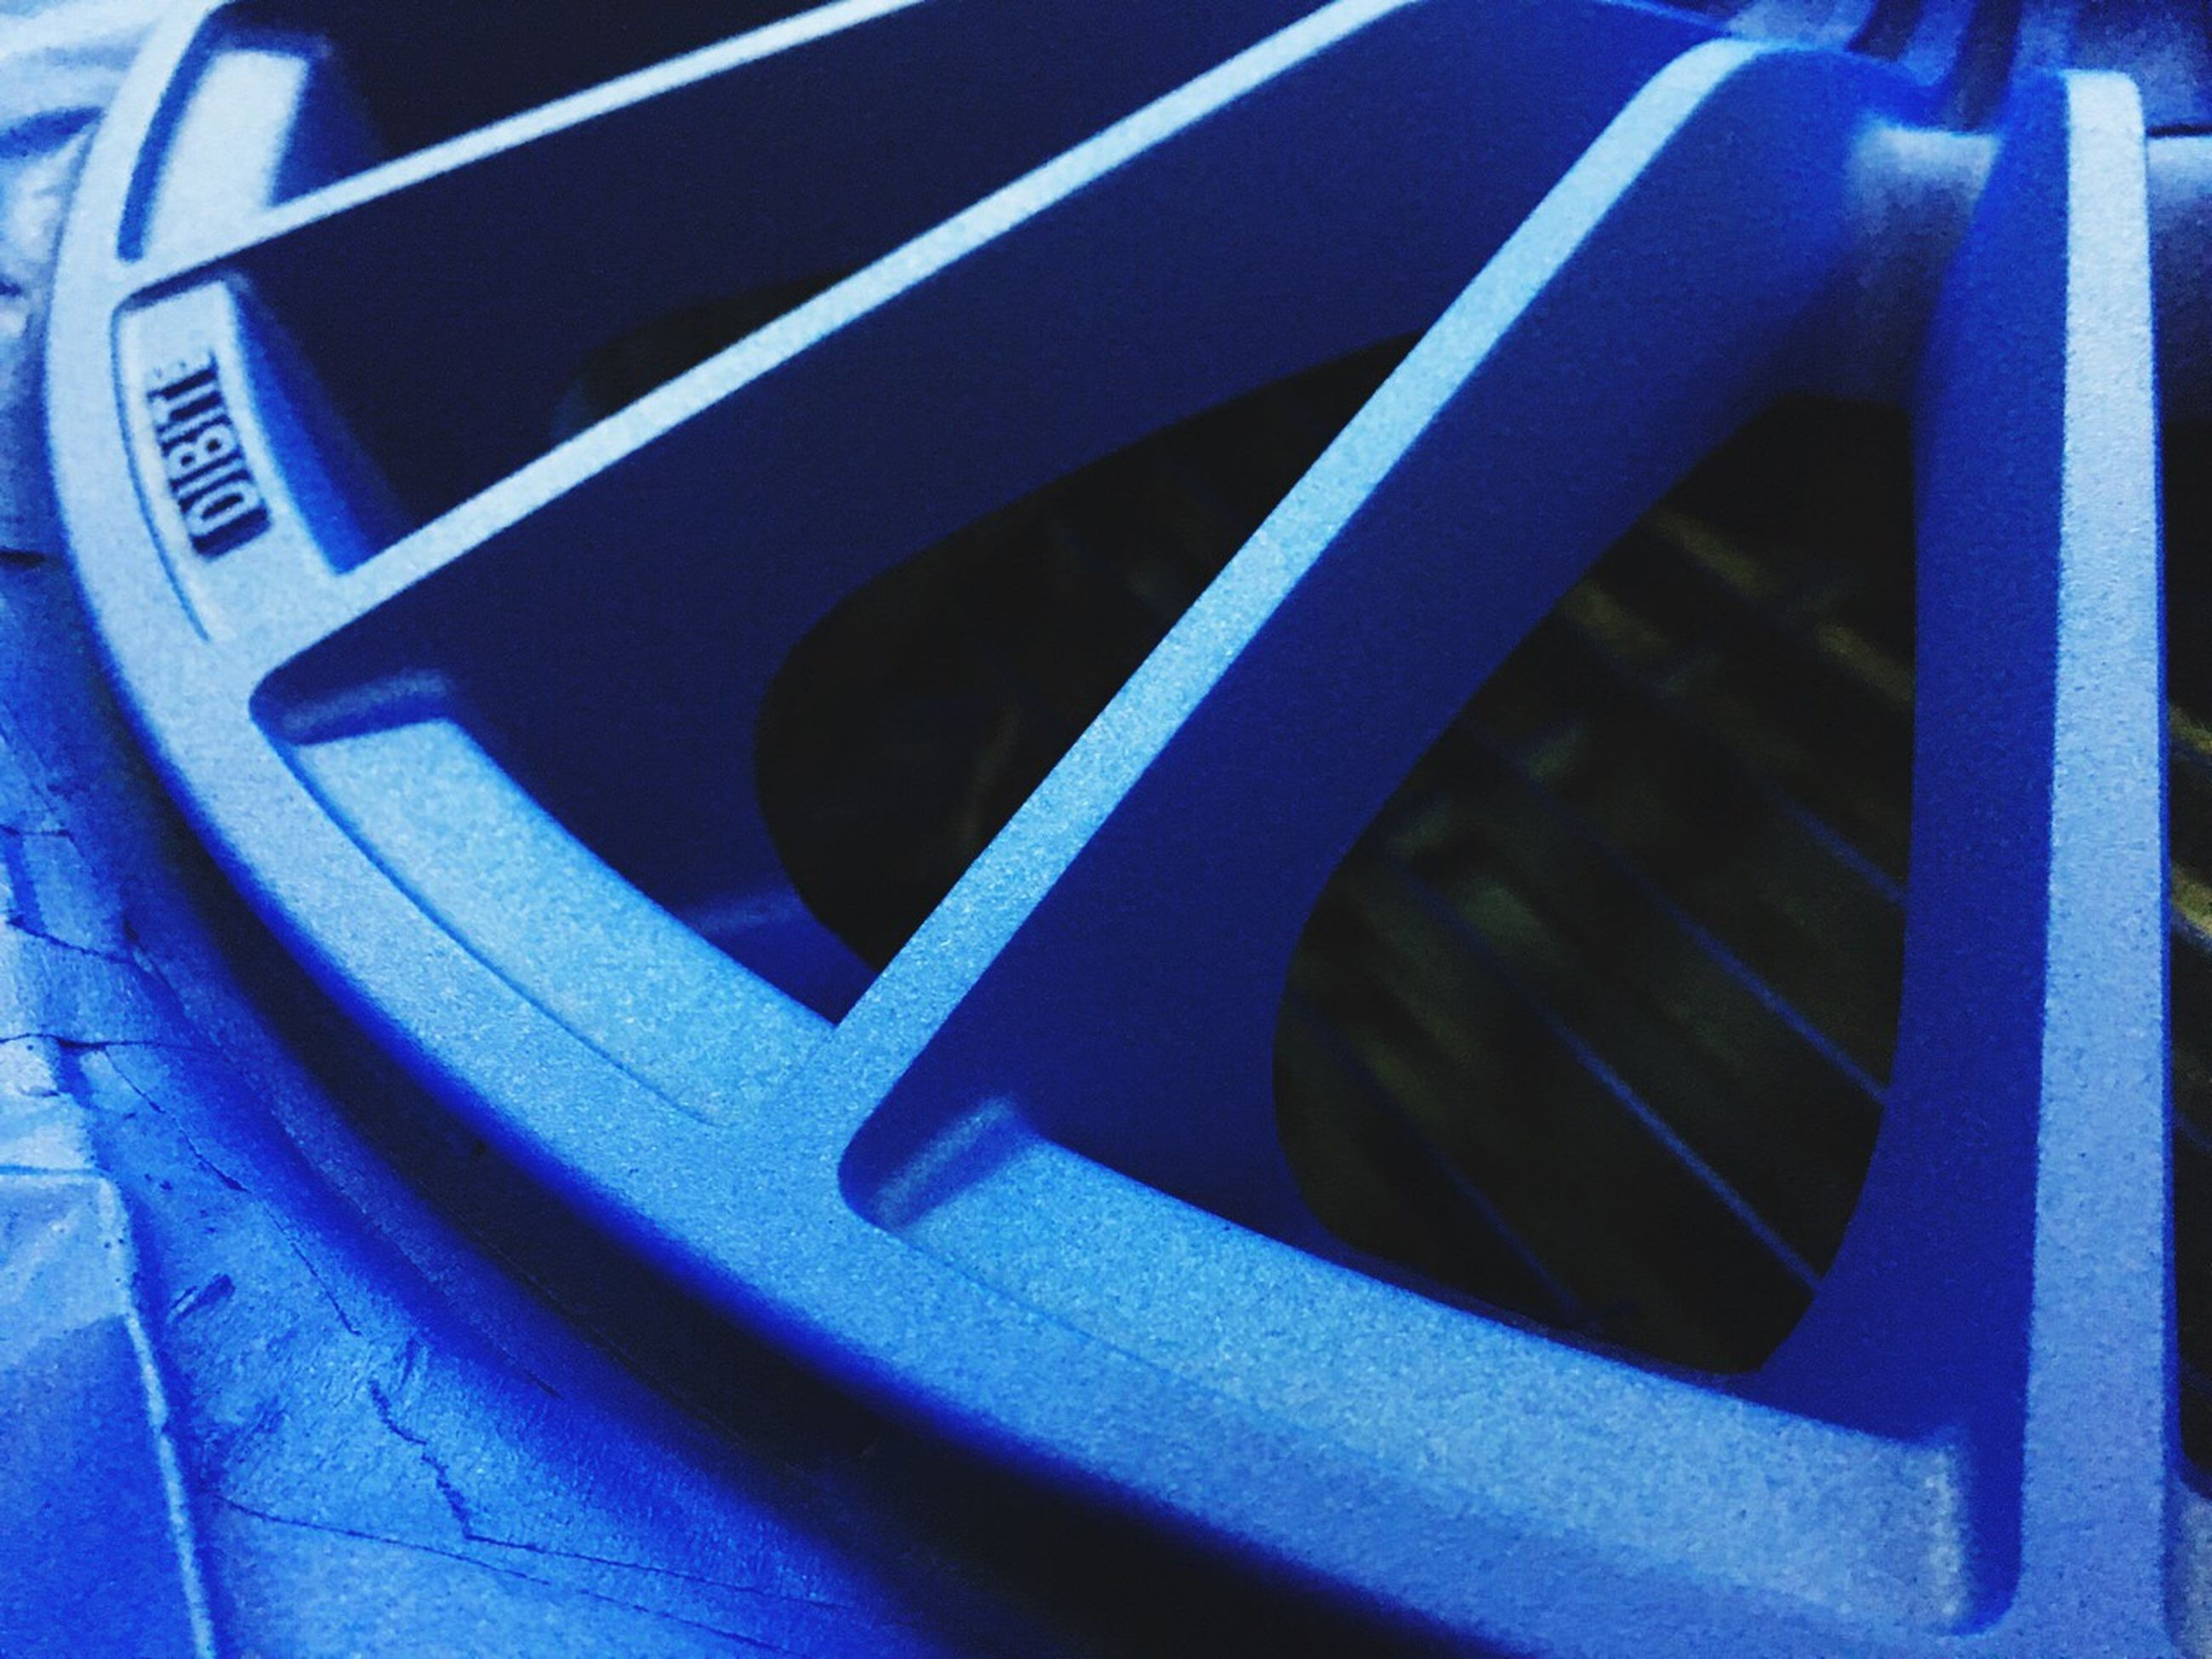 transportation, mode of transport, blue, land vehicle, close-up, metal, car, no people, indoors, part of, sunlight, metallic, day, cropped, low angle view, steps, travel, high angle view, stationary